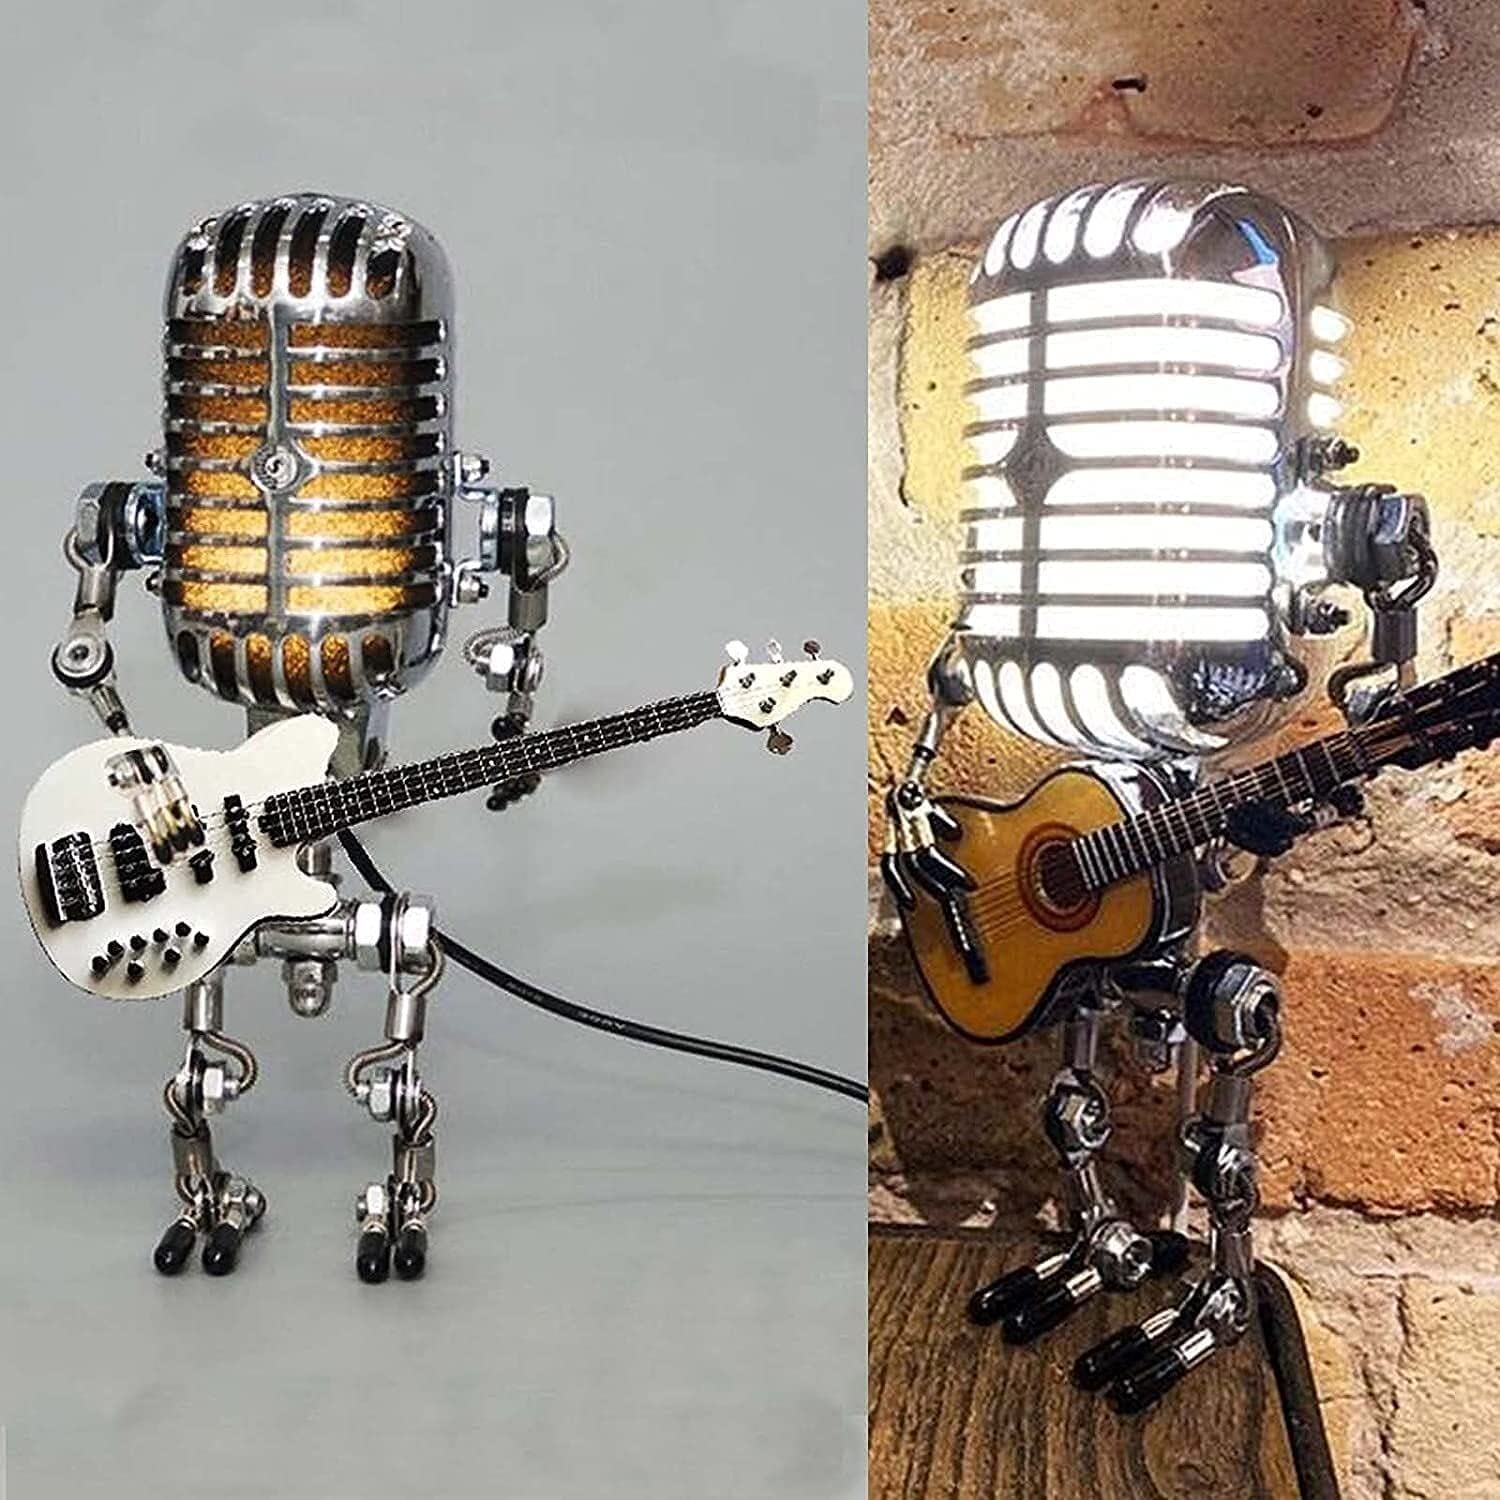 Bombing free shipping Vintage Microphone Robot Night Light T Creative gift